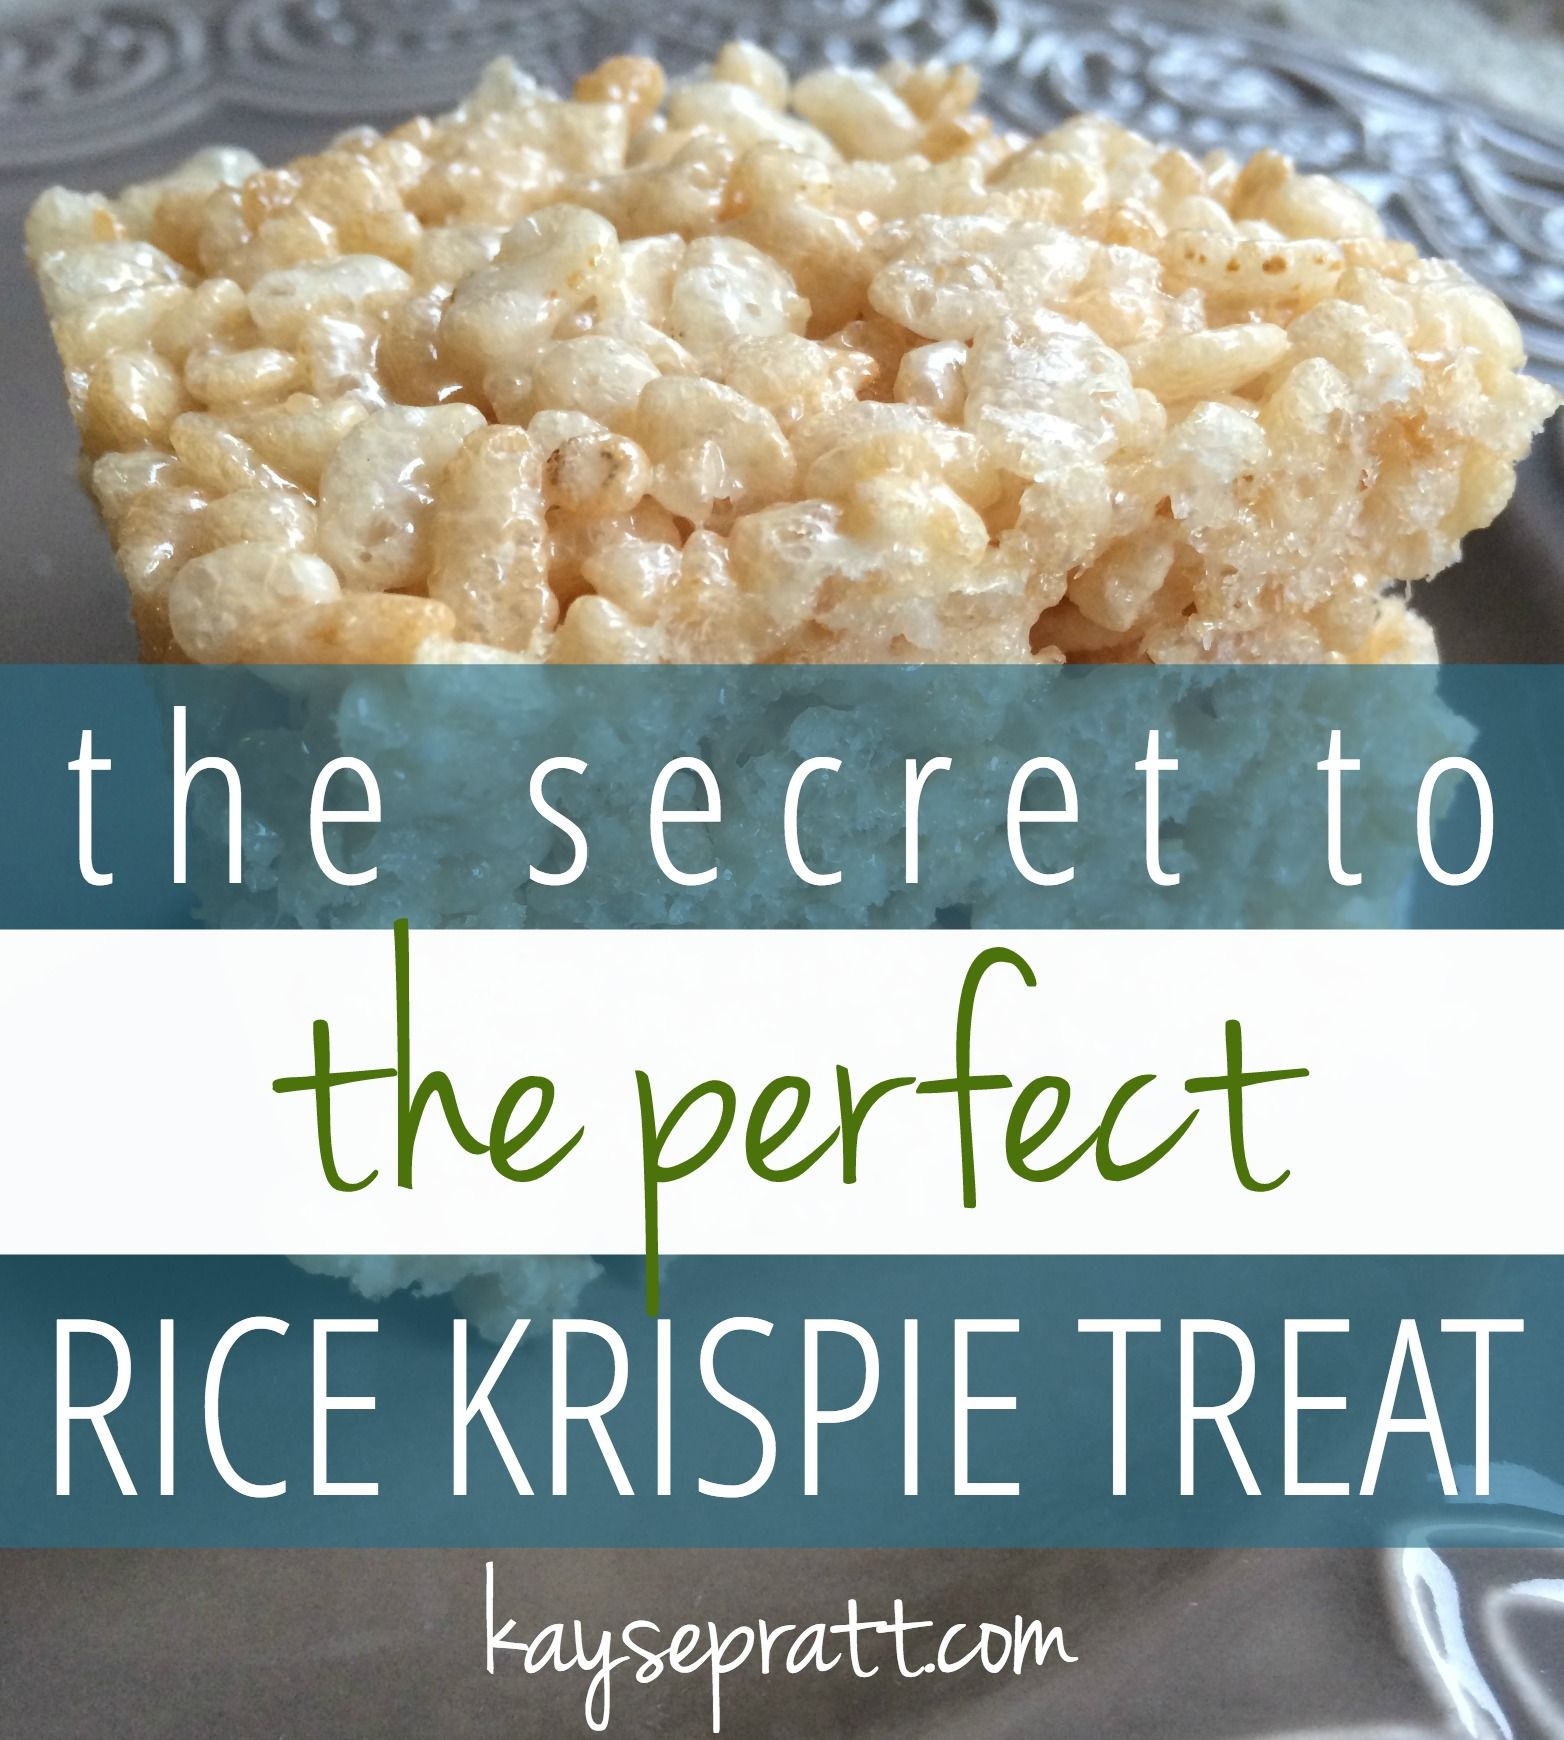 The Secret to the PERFECT Rice Krispie Treat - Anchored Women #ricekrispiestreats